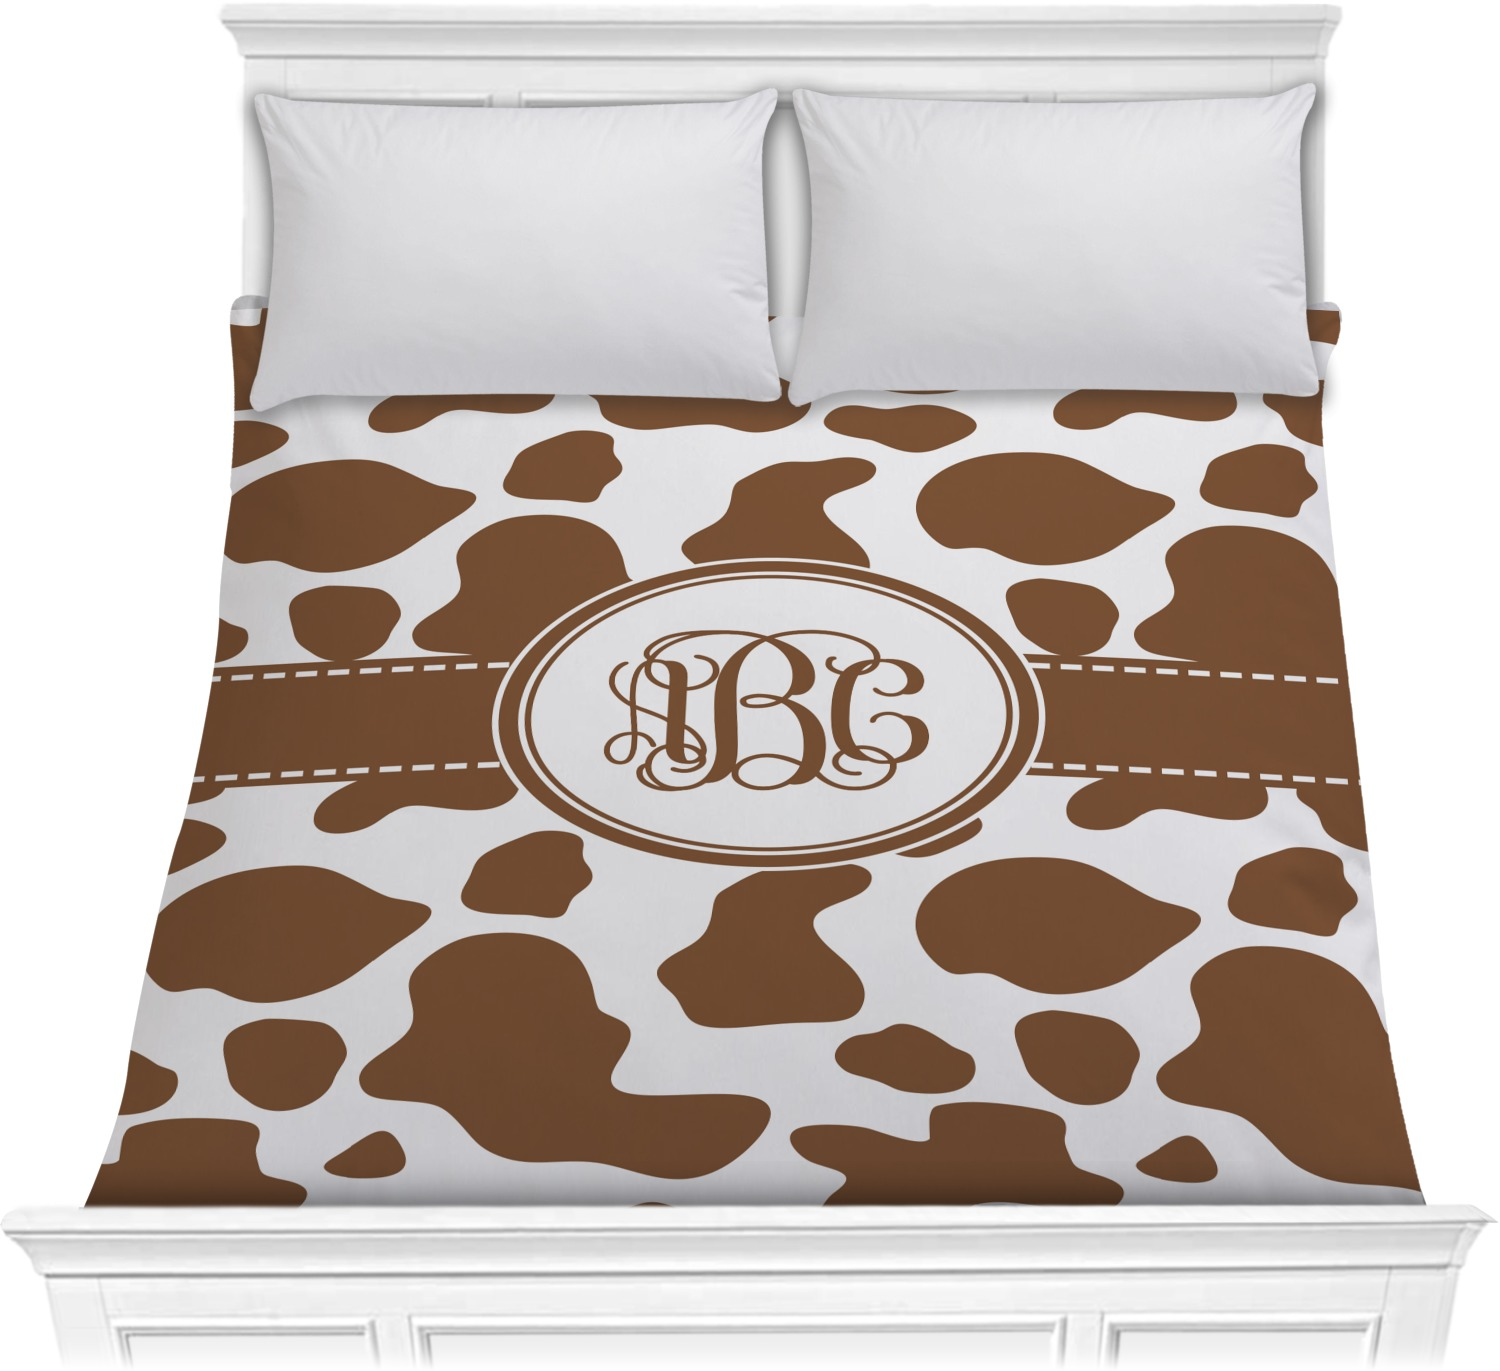 Cow Print Comforter Full Queen Personalized